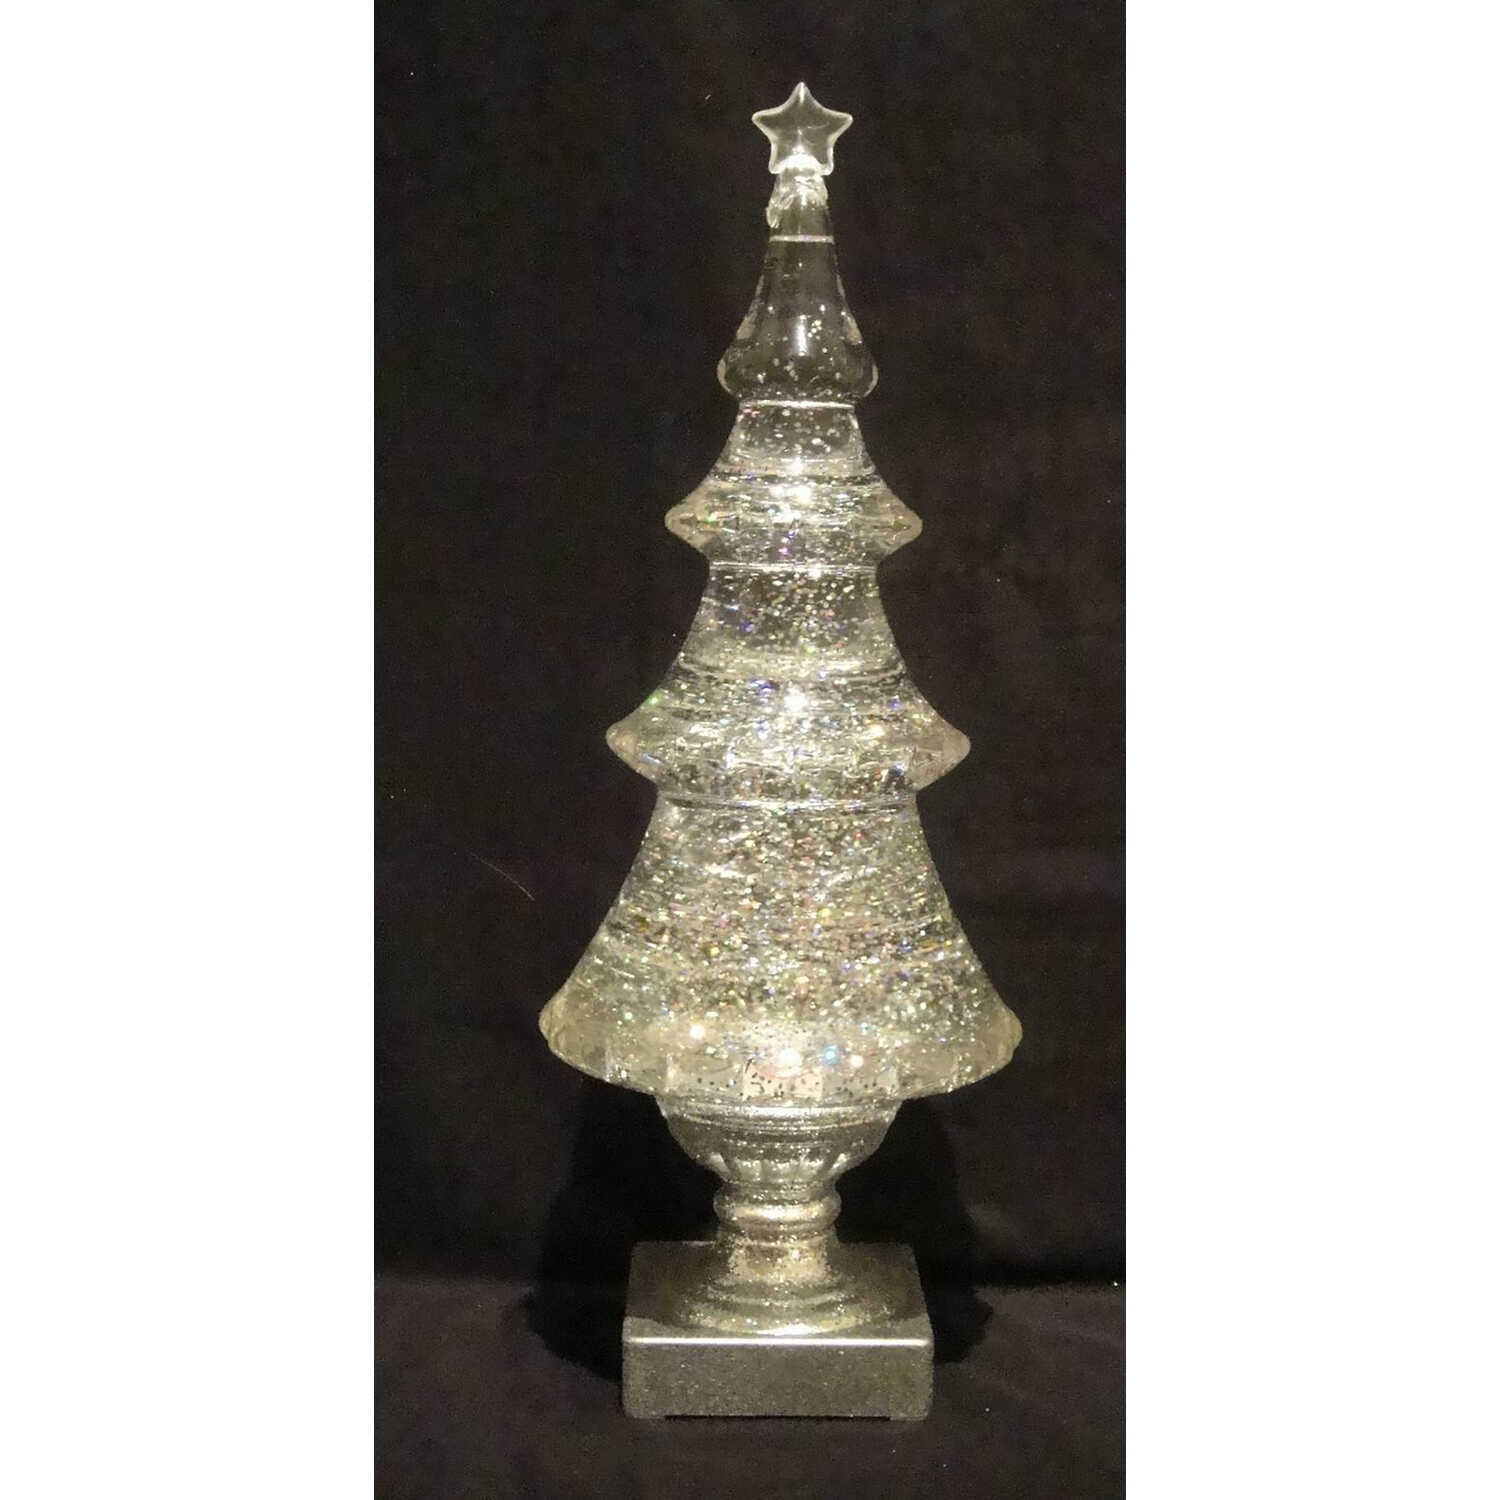 Roman  LED Swirl Tree  Christmas Figurine  Clear  Plastic  1 pk